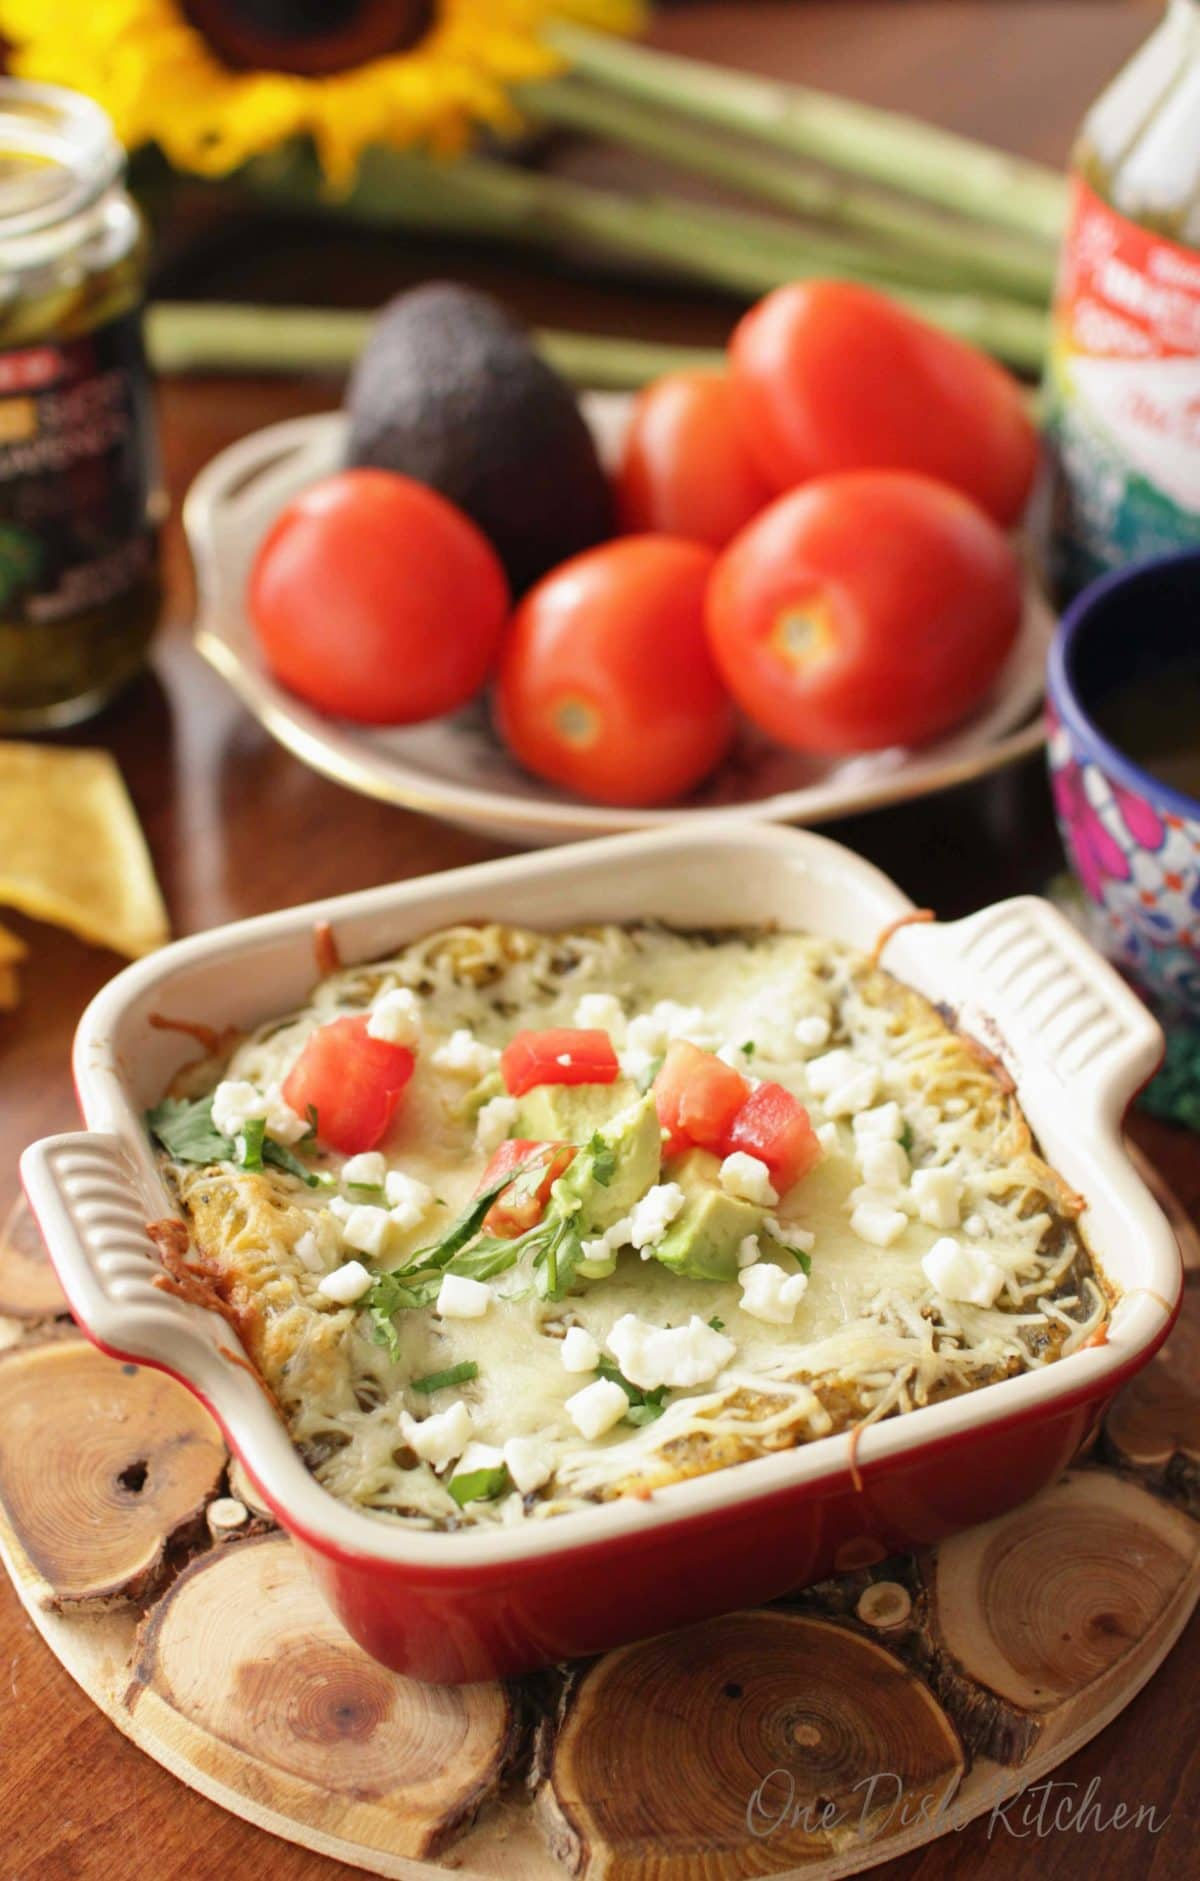 Enchiladas topped with crumbled cotija cheese and chopped avocado and tomatoes in a small baking dish on a wooden trivet next to a bowl of tomatoes an avocados